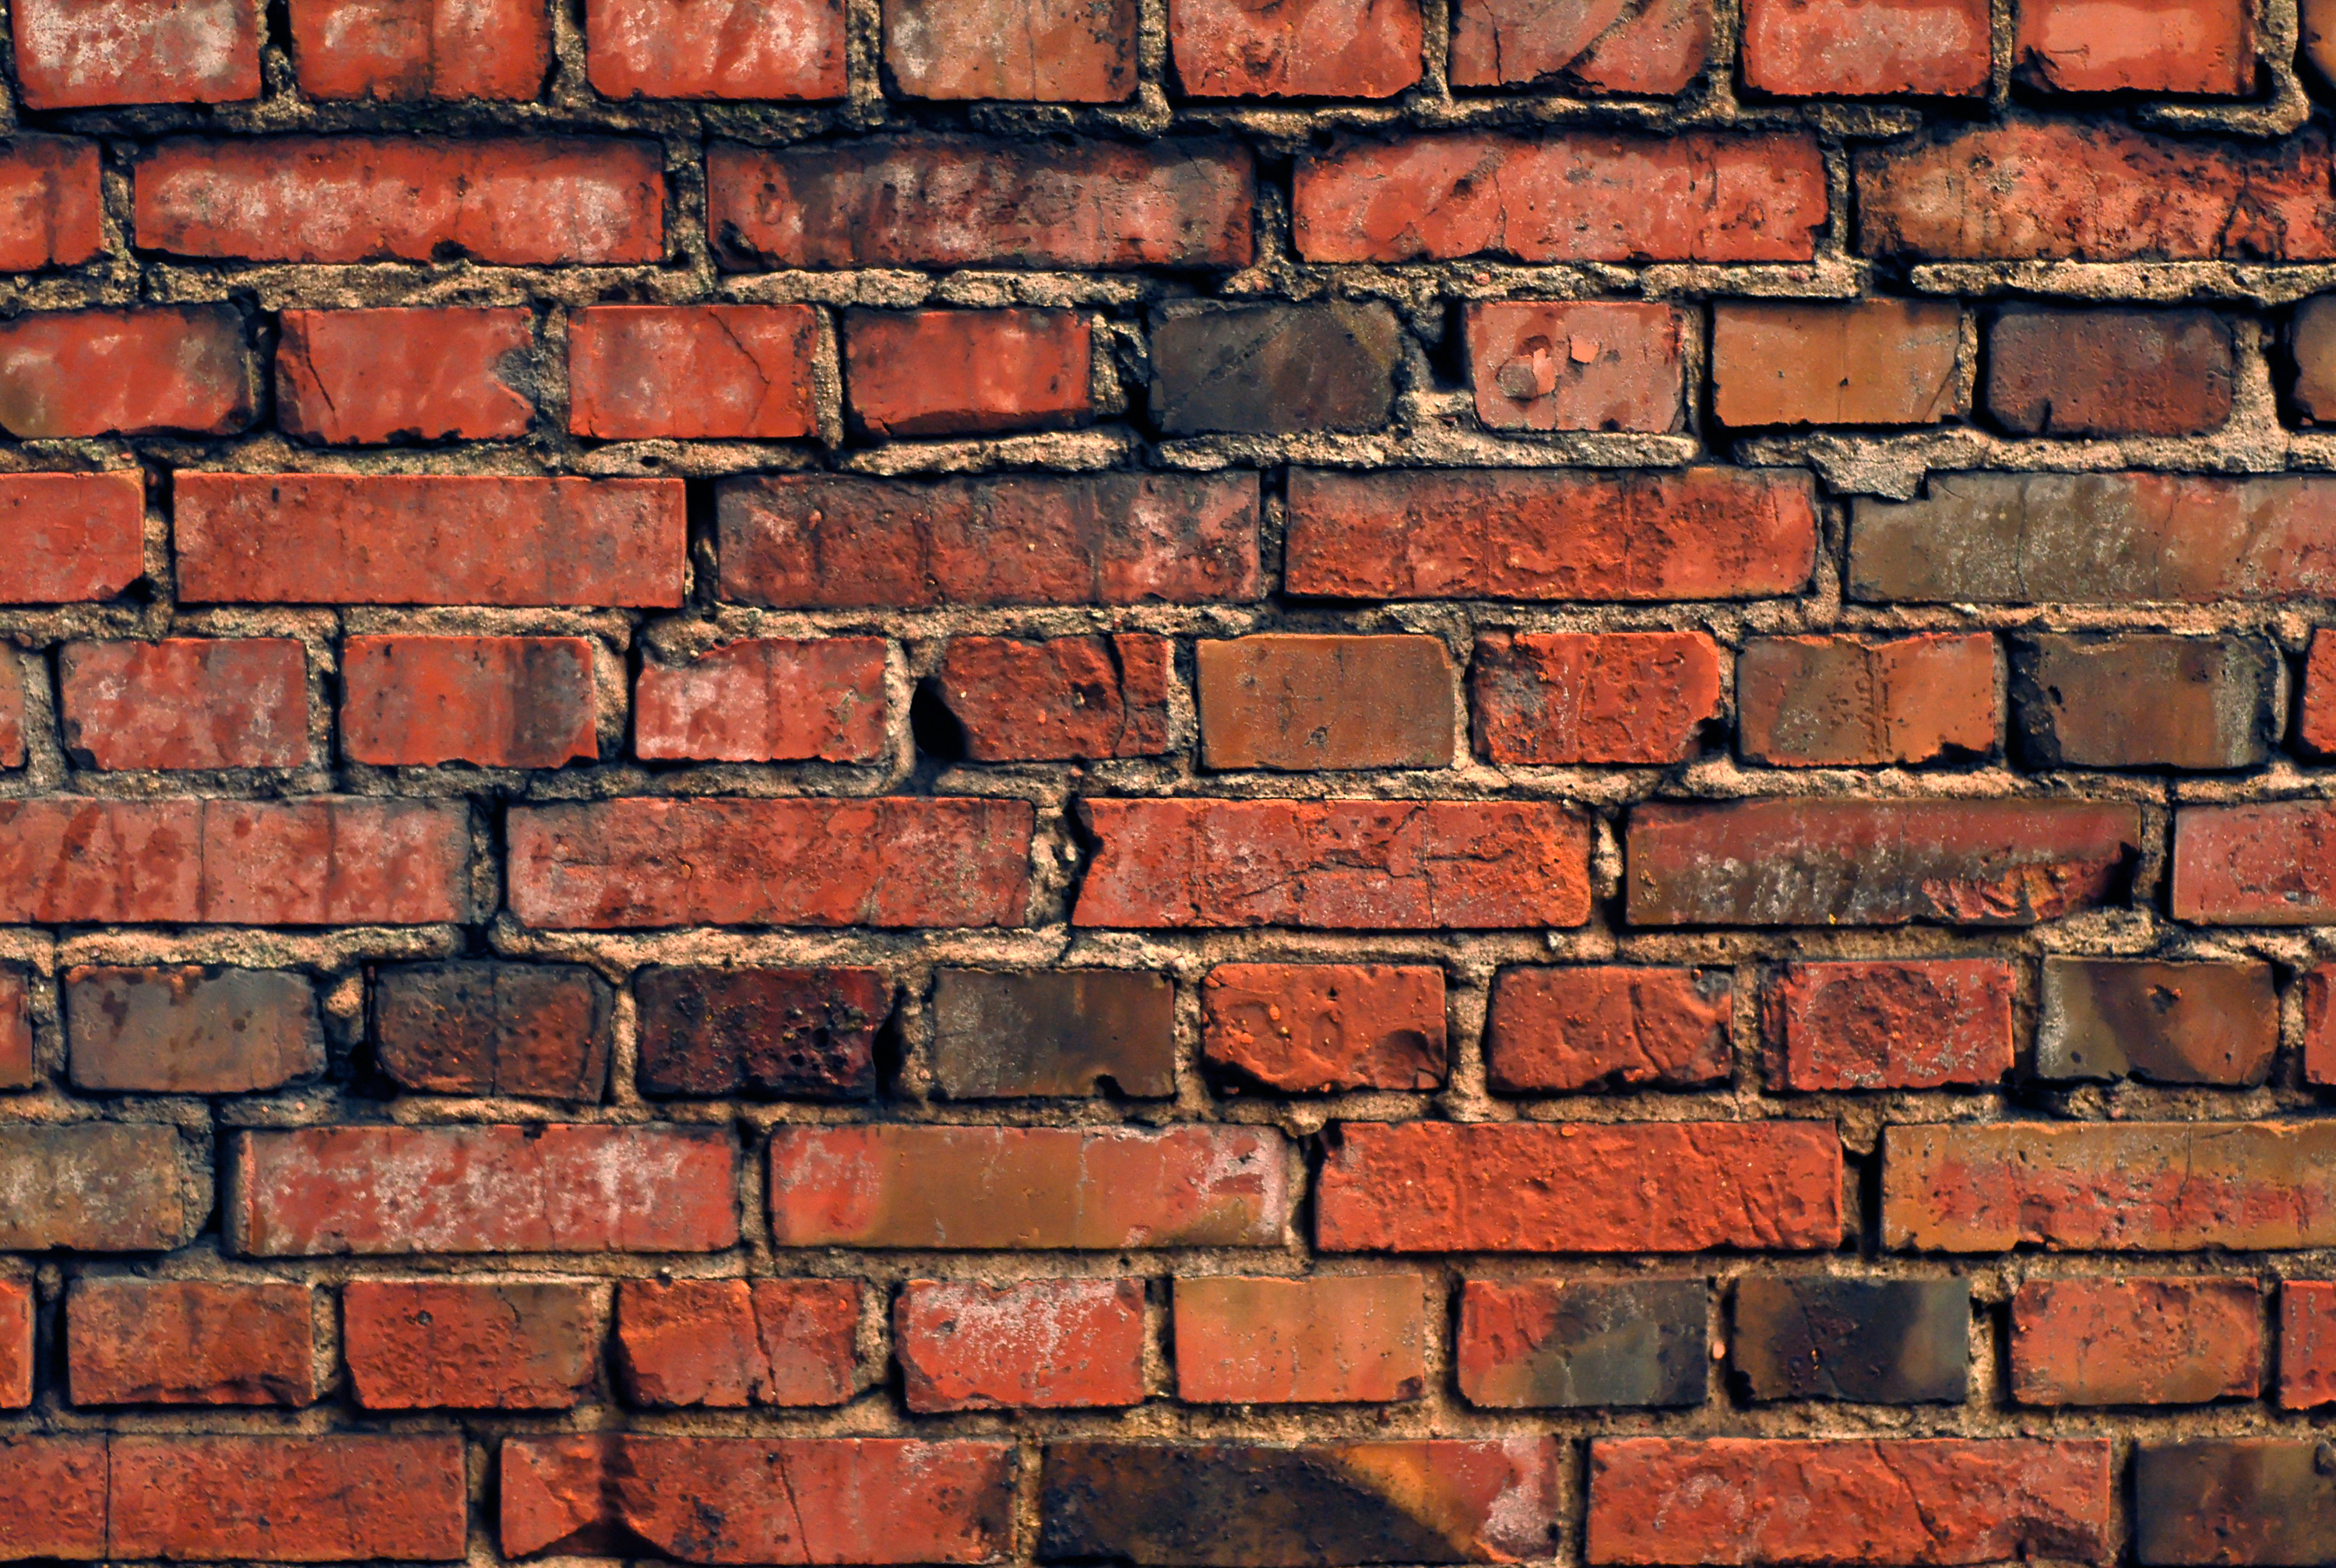 Brick wall brick wall texture brick wall bricks bricks for All brick